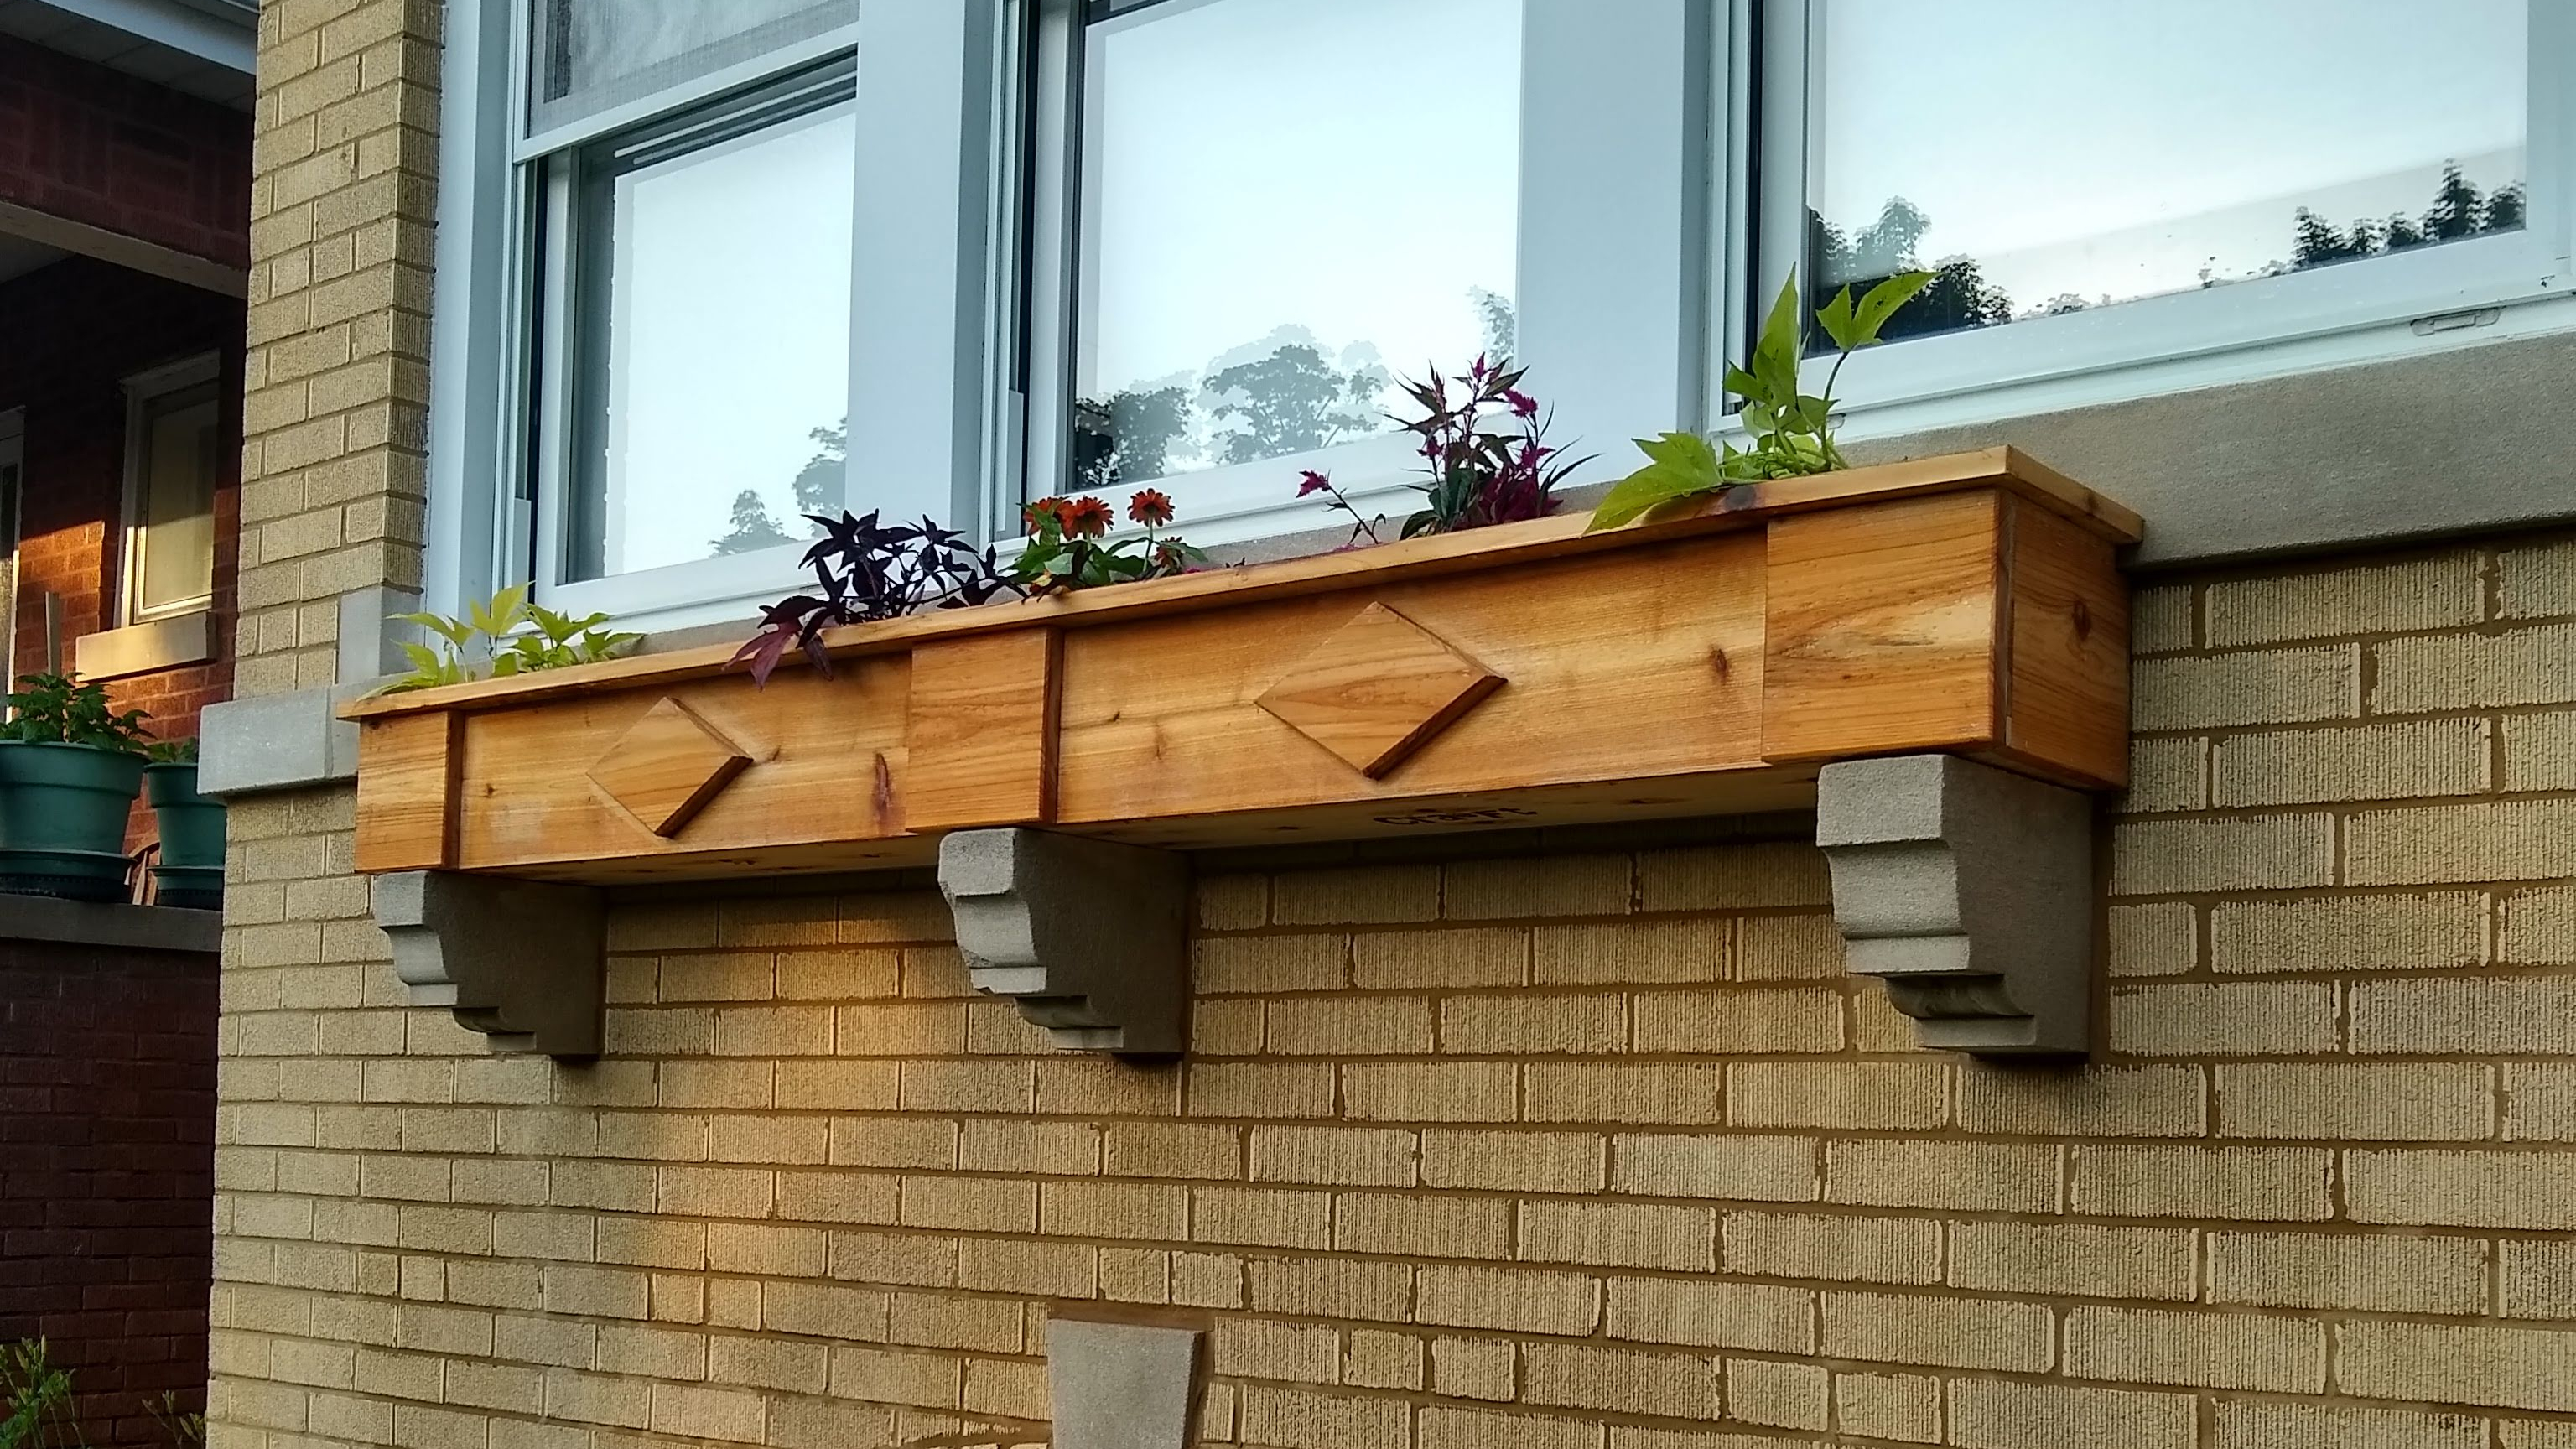 A cedar window box resting on limestone corbels protuding from the front of a brick bungalow.